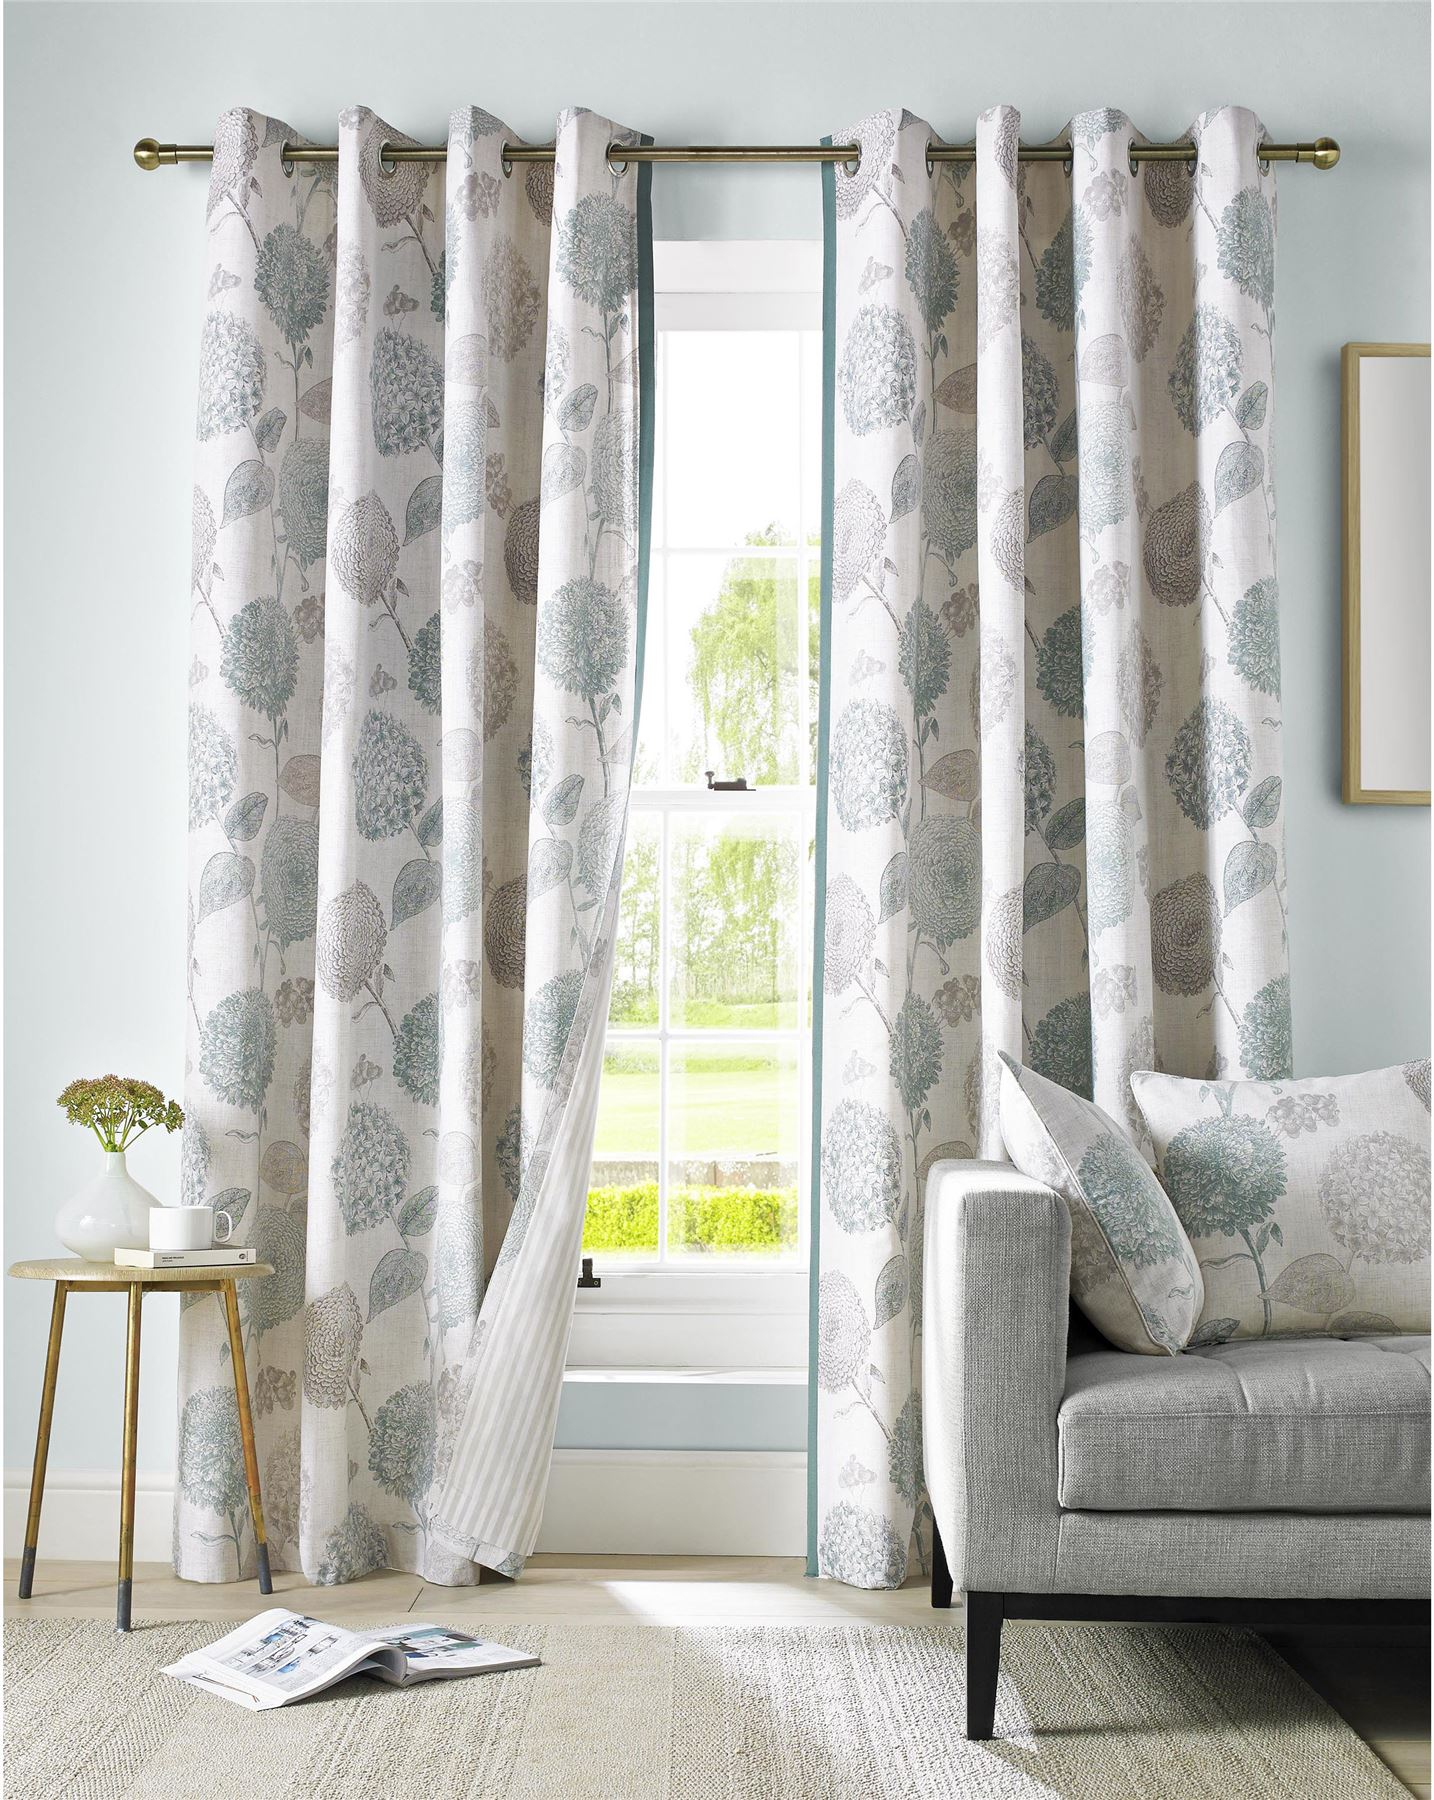 drapes to curtains cloudprinttwilllightblockingcurtainpanel drape best standard in the lengths pillowfort blackout buy